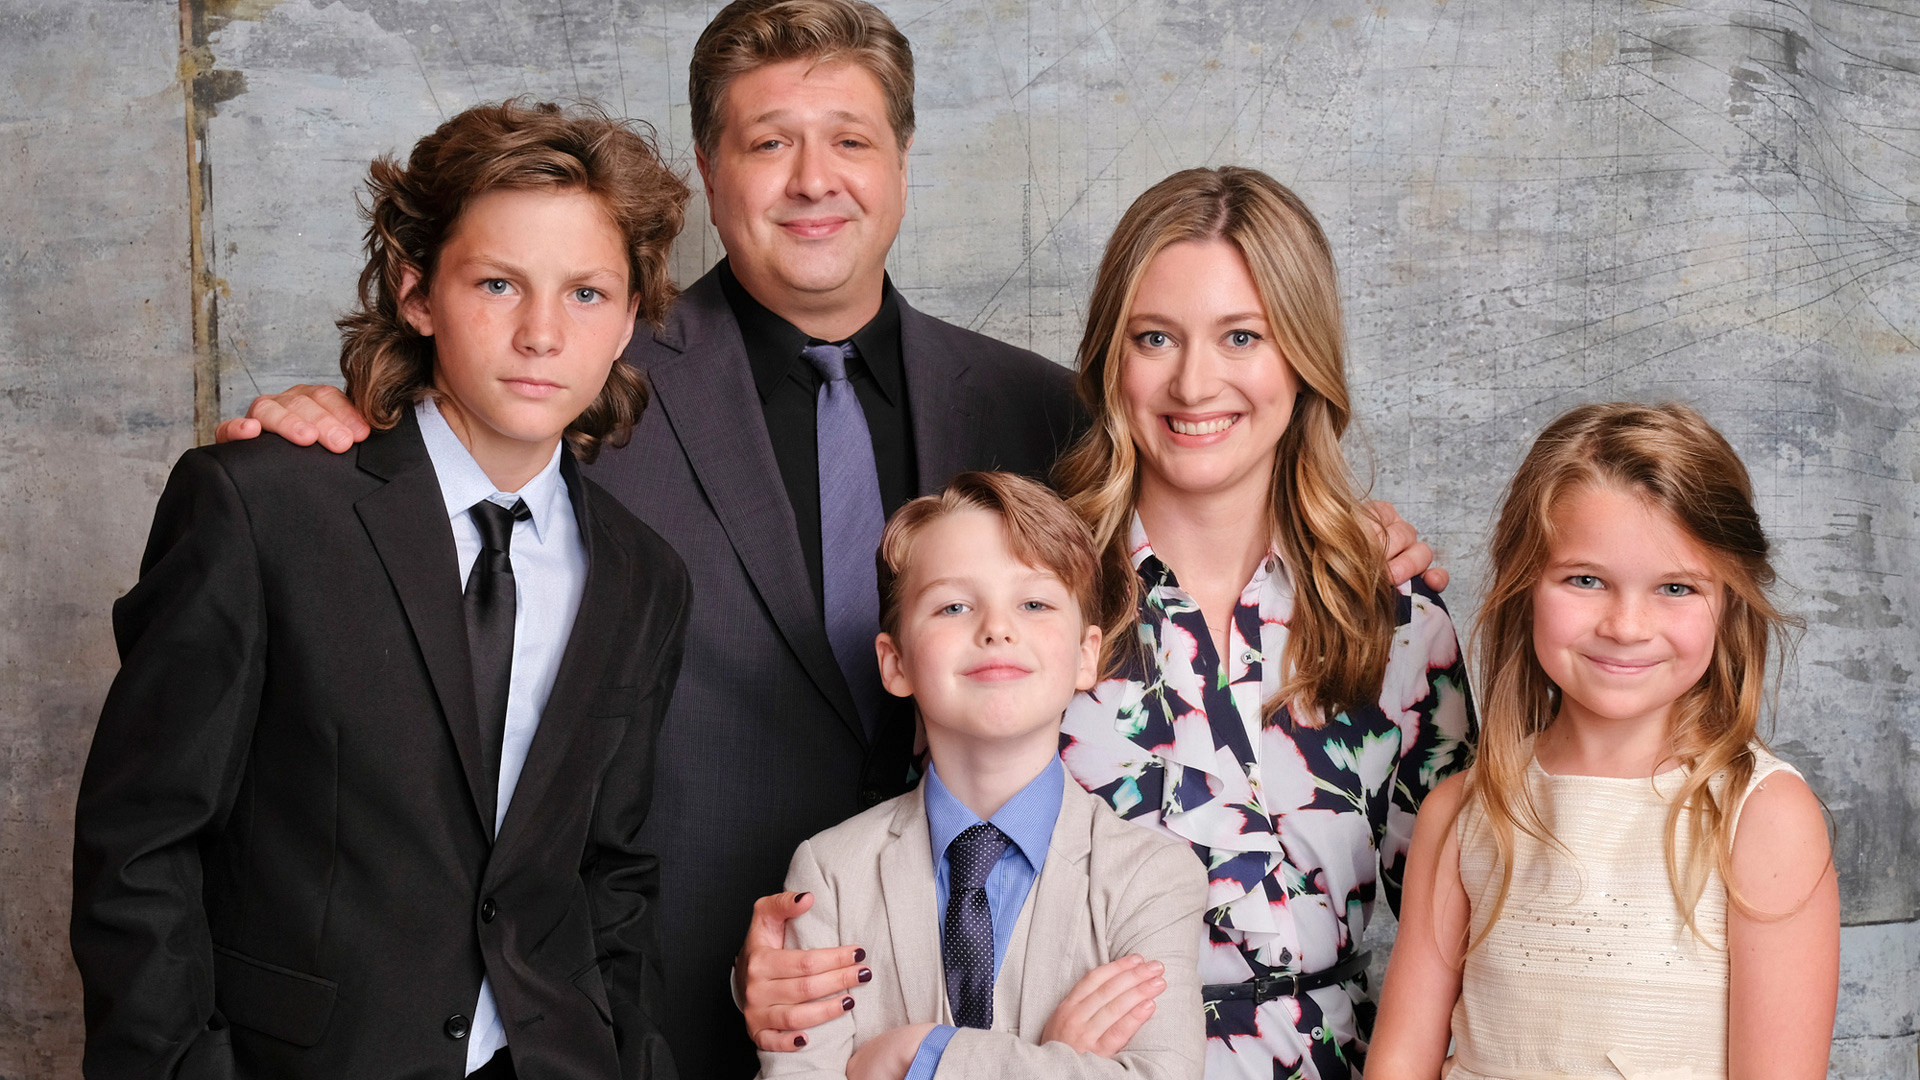 Montana Jordan, Lance Barber, Iain Armitage, Zoe Perry, and Raegan Revord of Young Sheldon